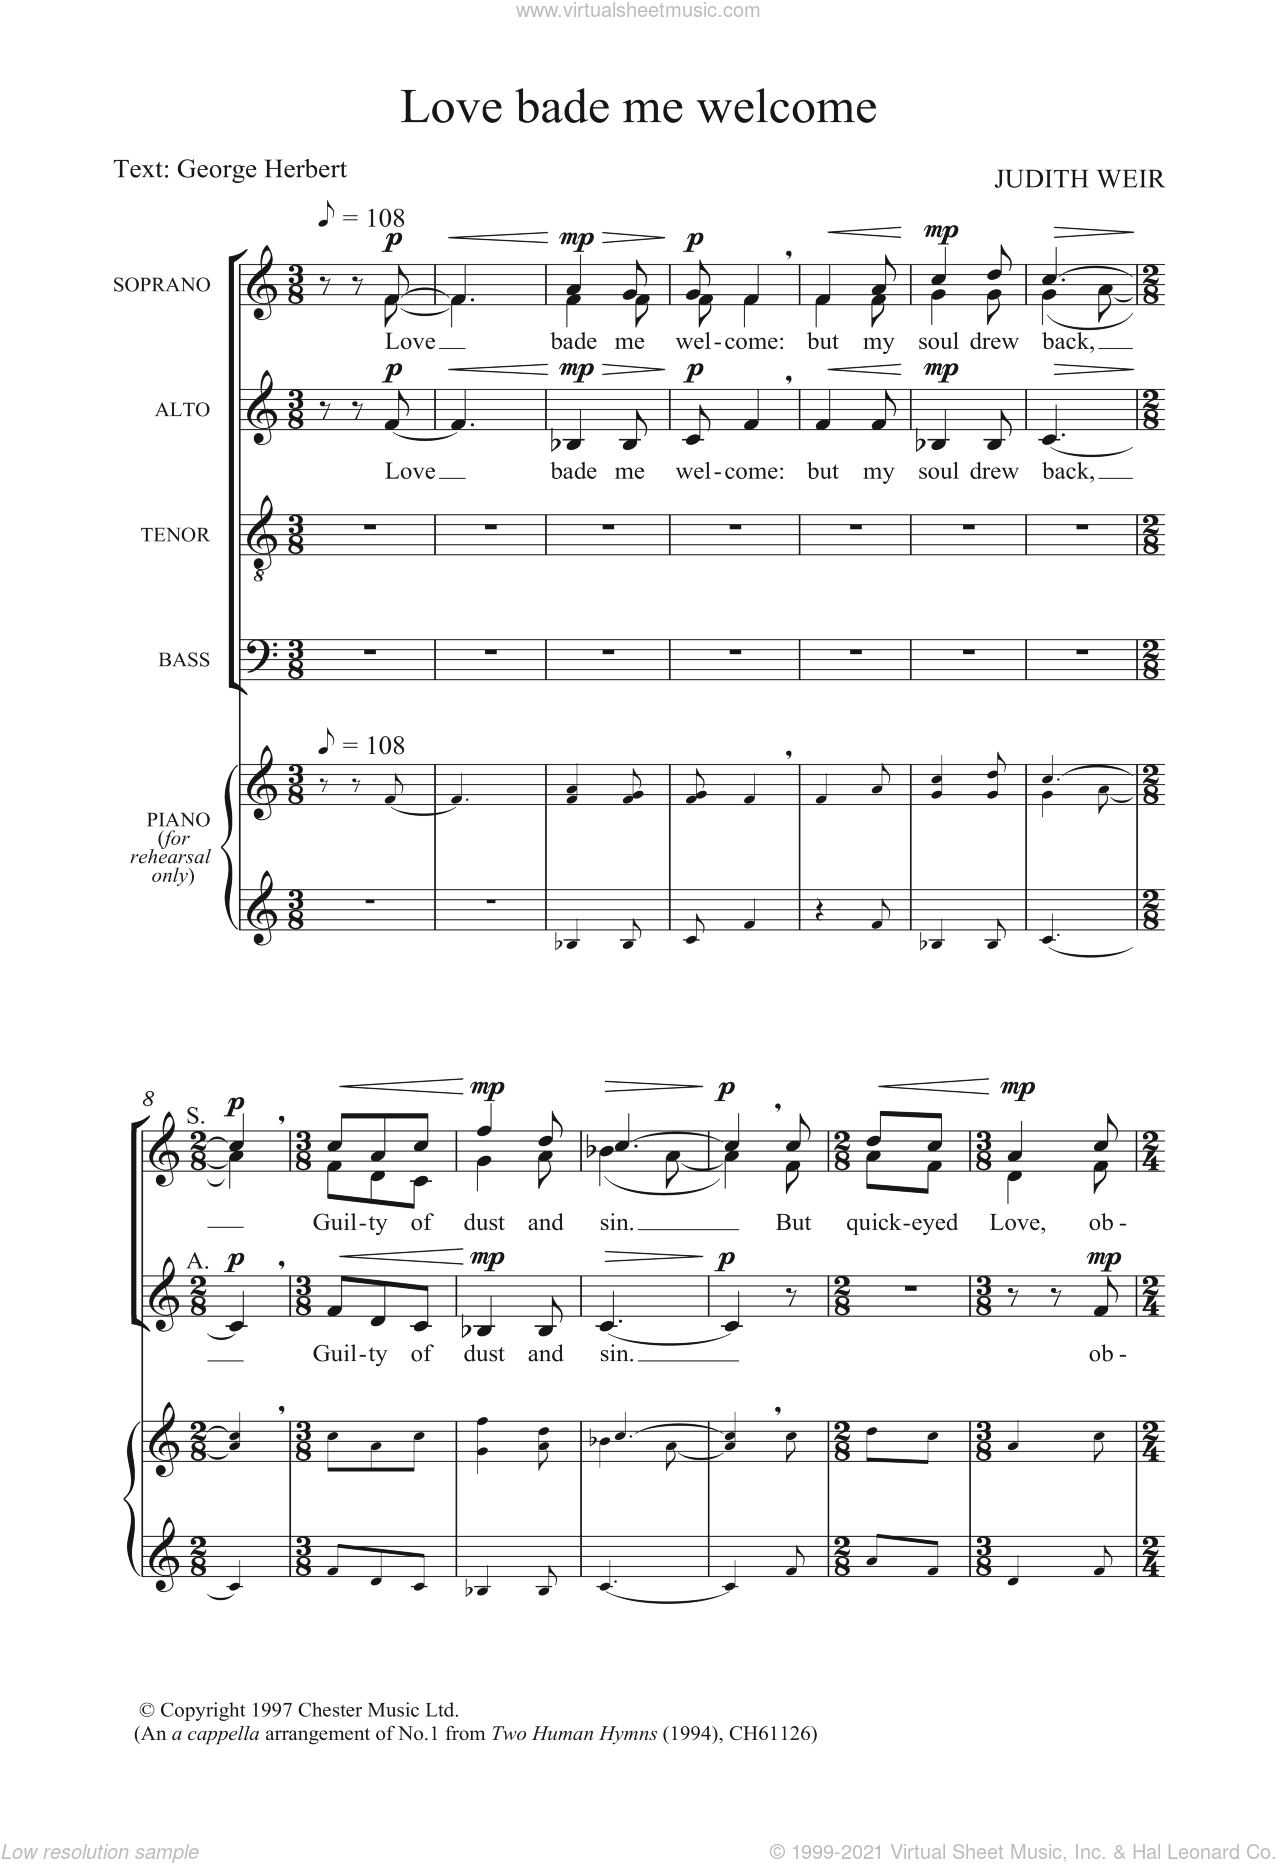 Love Bade Me Welcome sheet music for voice, piano or guitar by George Herbert and Judith Weir. Score Image Preview.